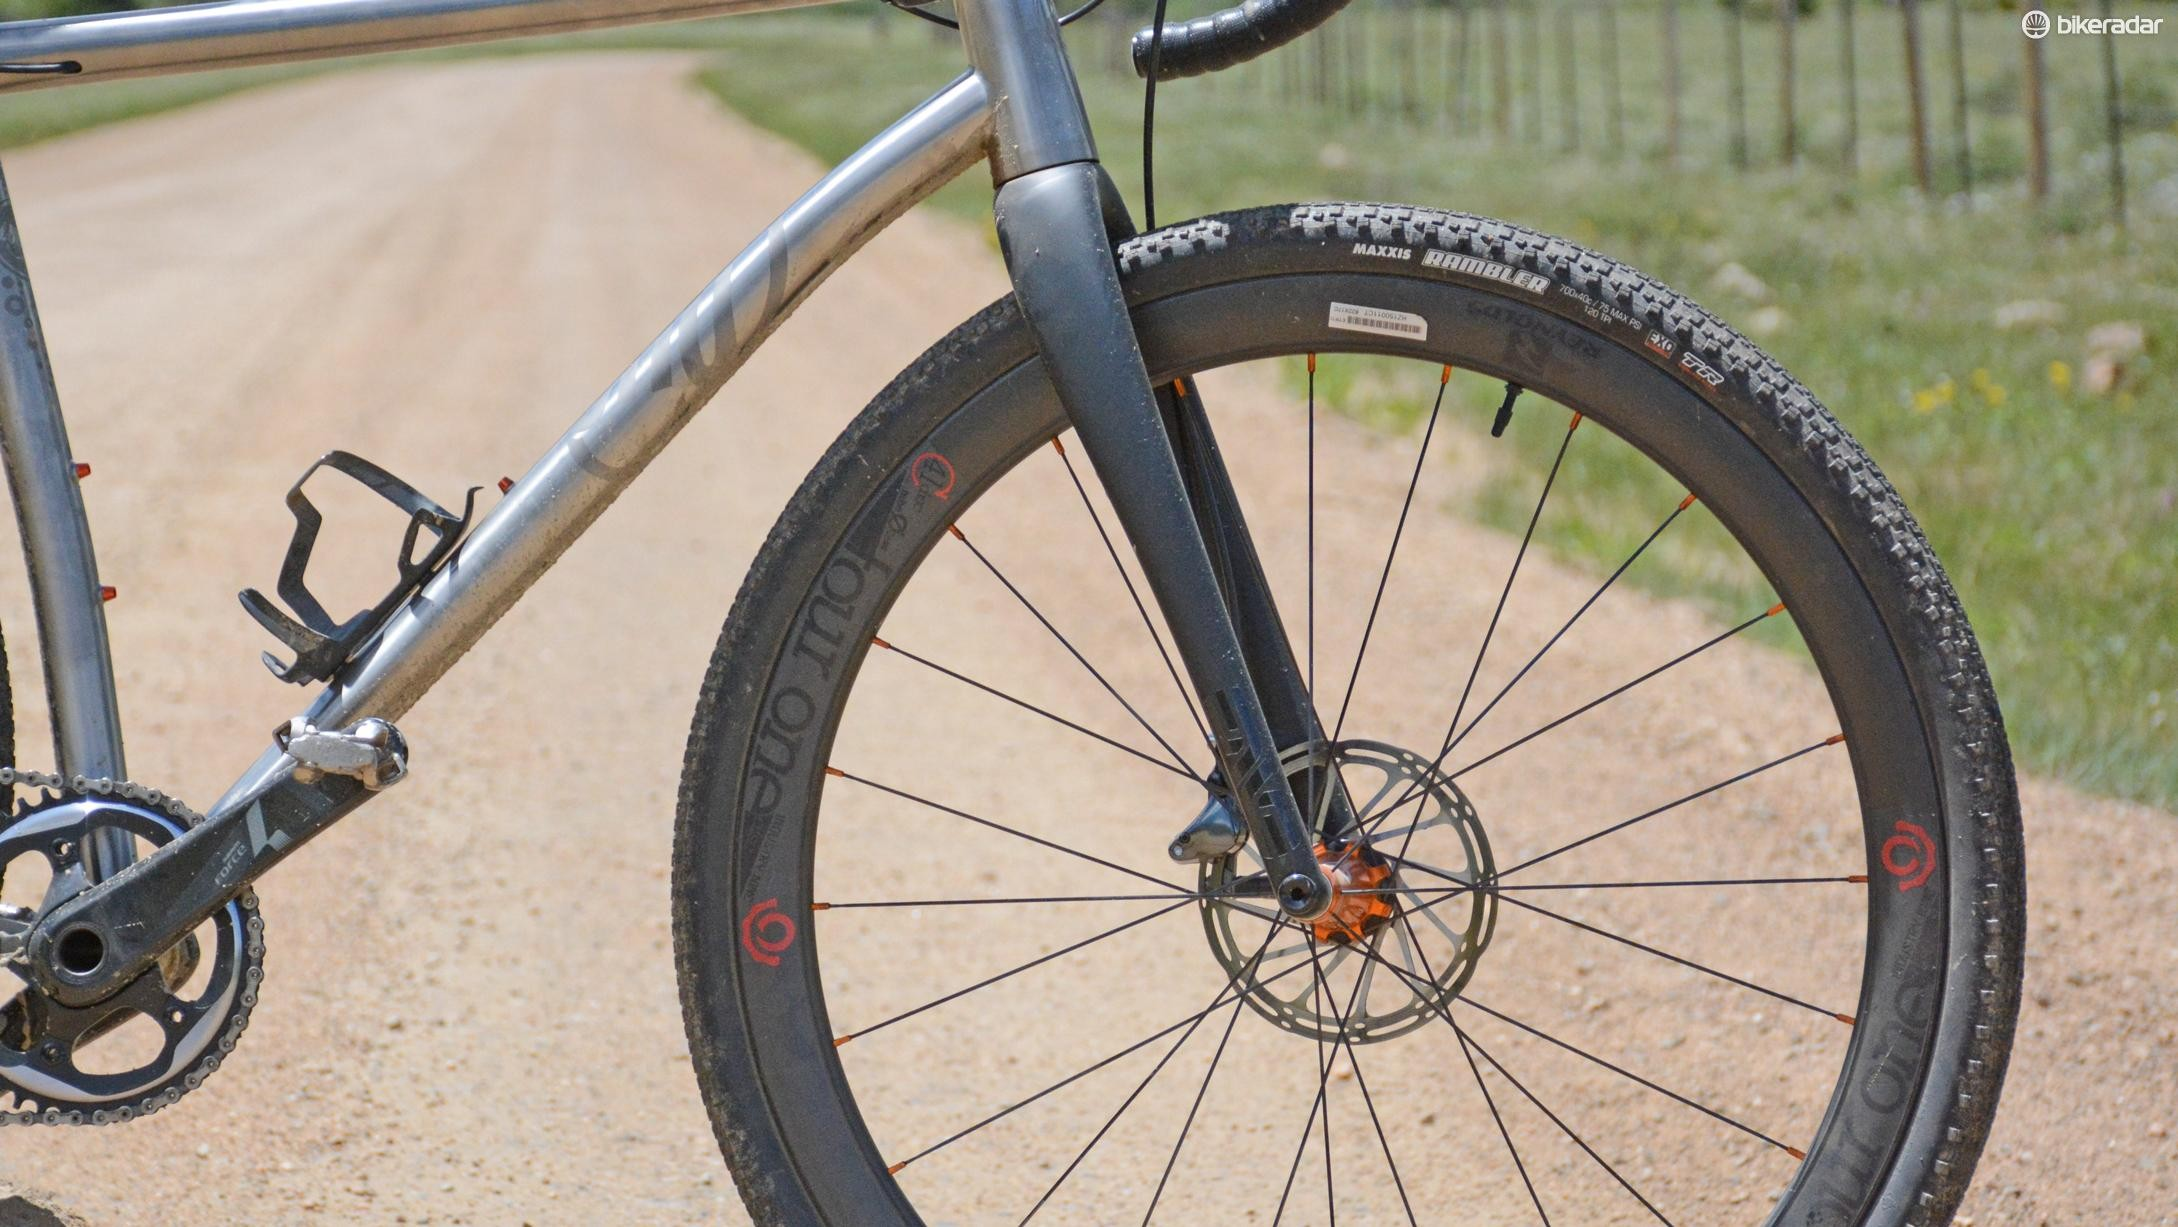 An Enve 'cross fork was fitted. A Lauf minimal suspension fork is an option